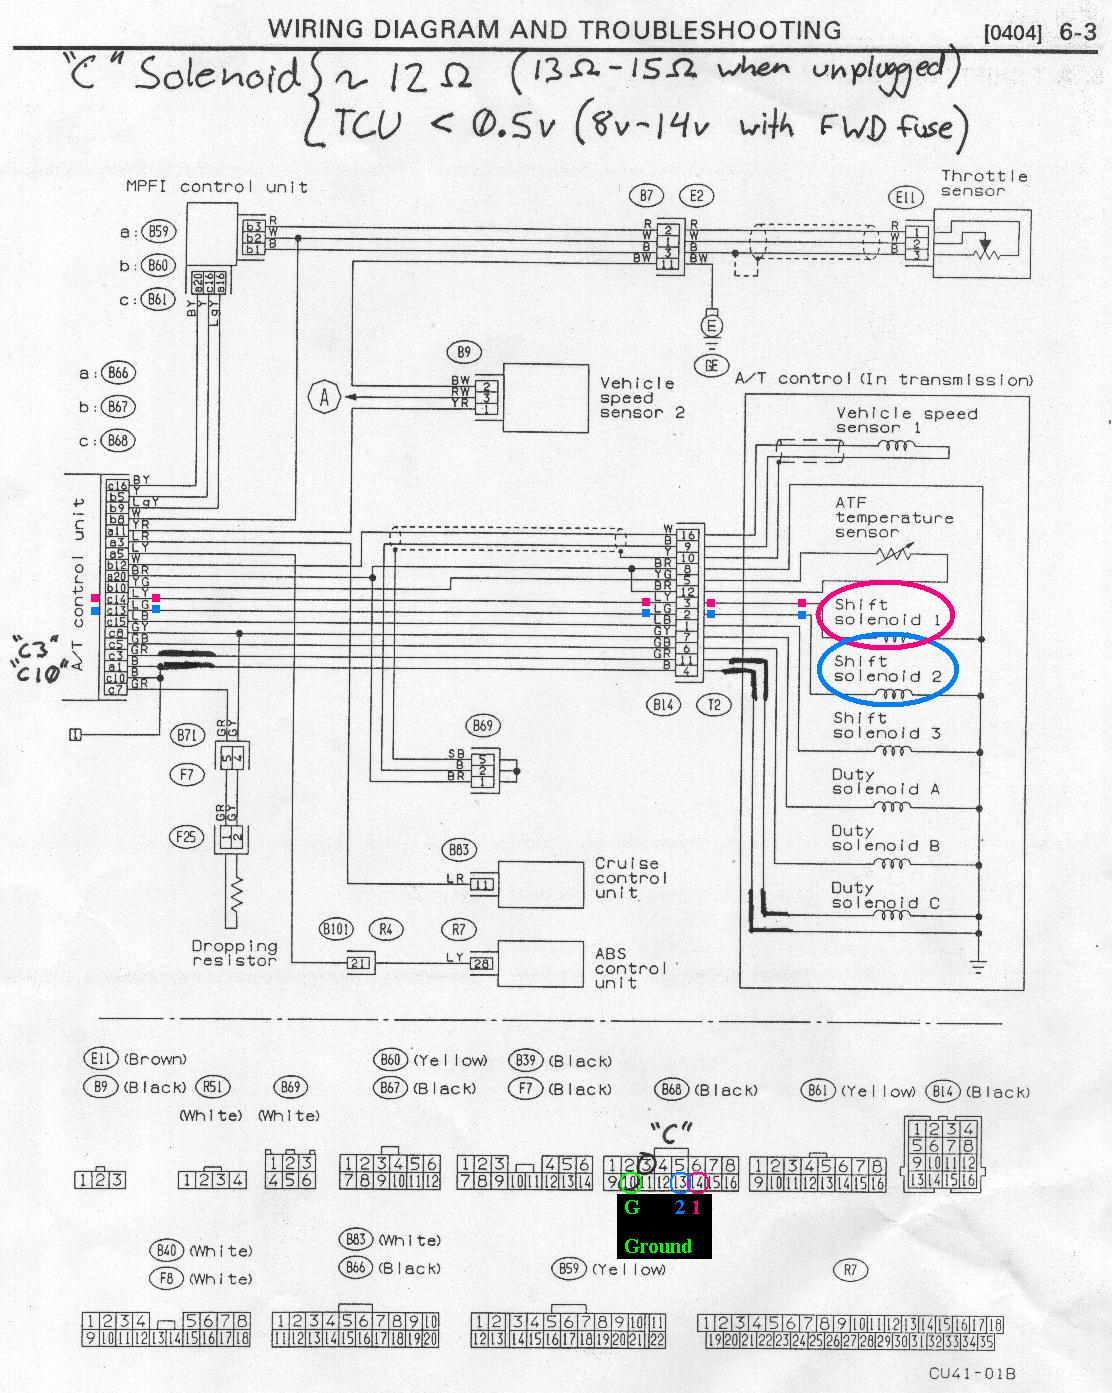 hight resolution of 1998 subaru legacy stereo wiring diagram 2005 subaru subaru ignition wiring diagram subaru radiator fan wiring